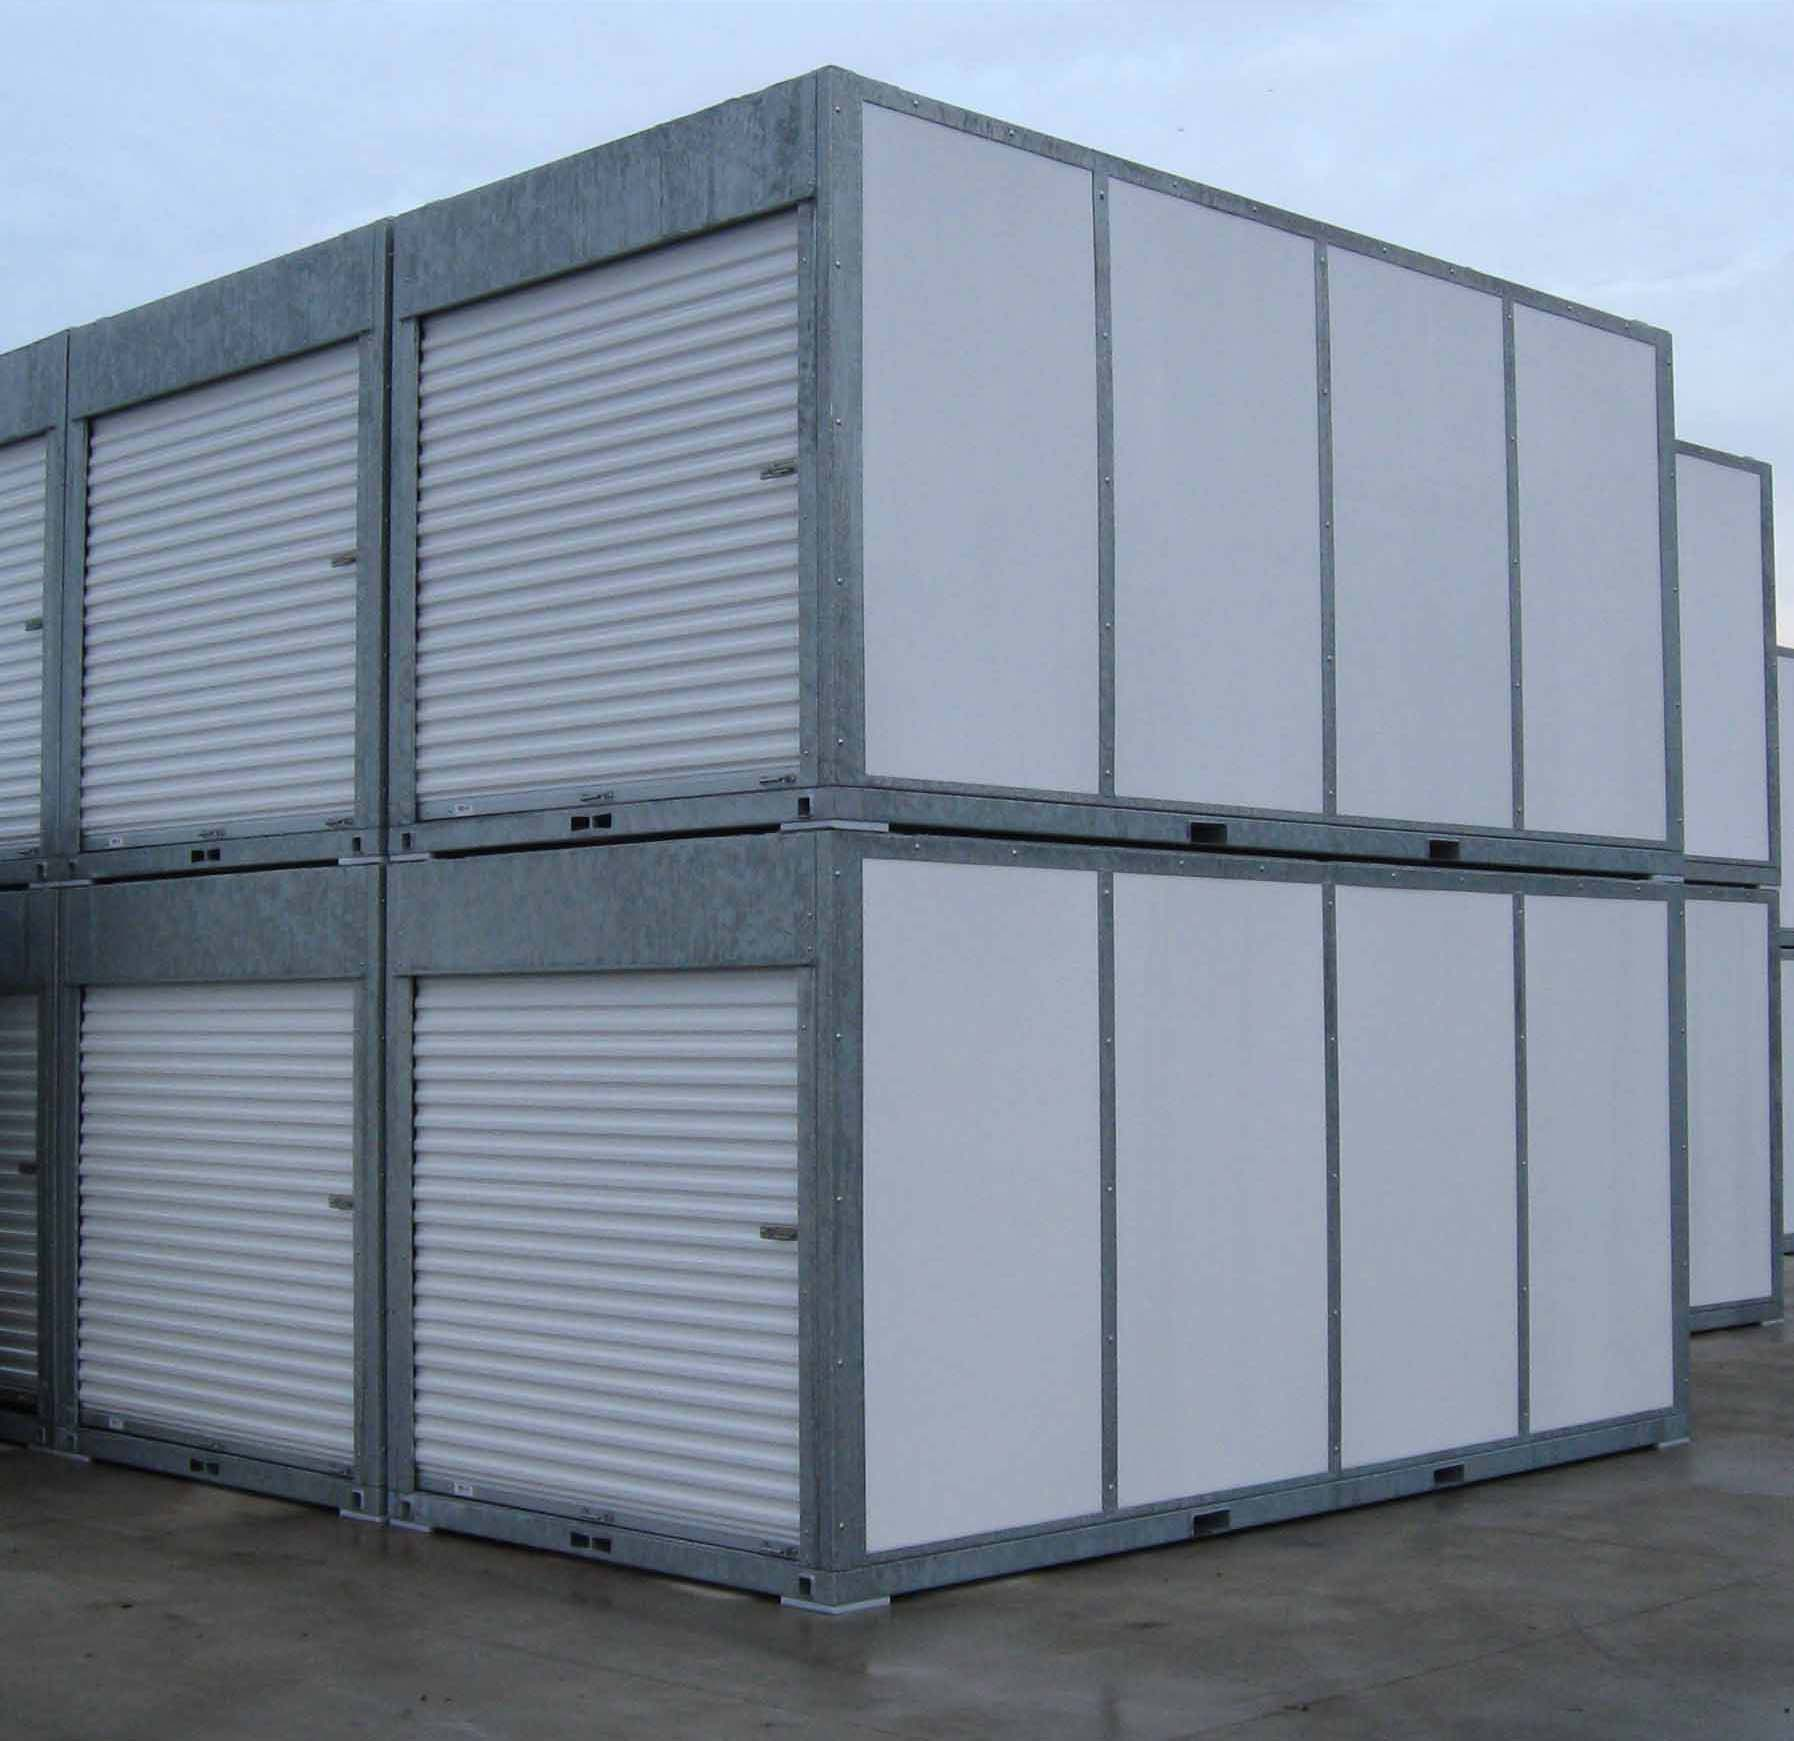 Portable Storage Units & Portable Storage Units Decks: Storage Bodies Roll-Off Truck Bodies